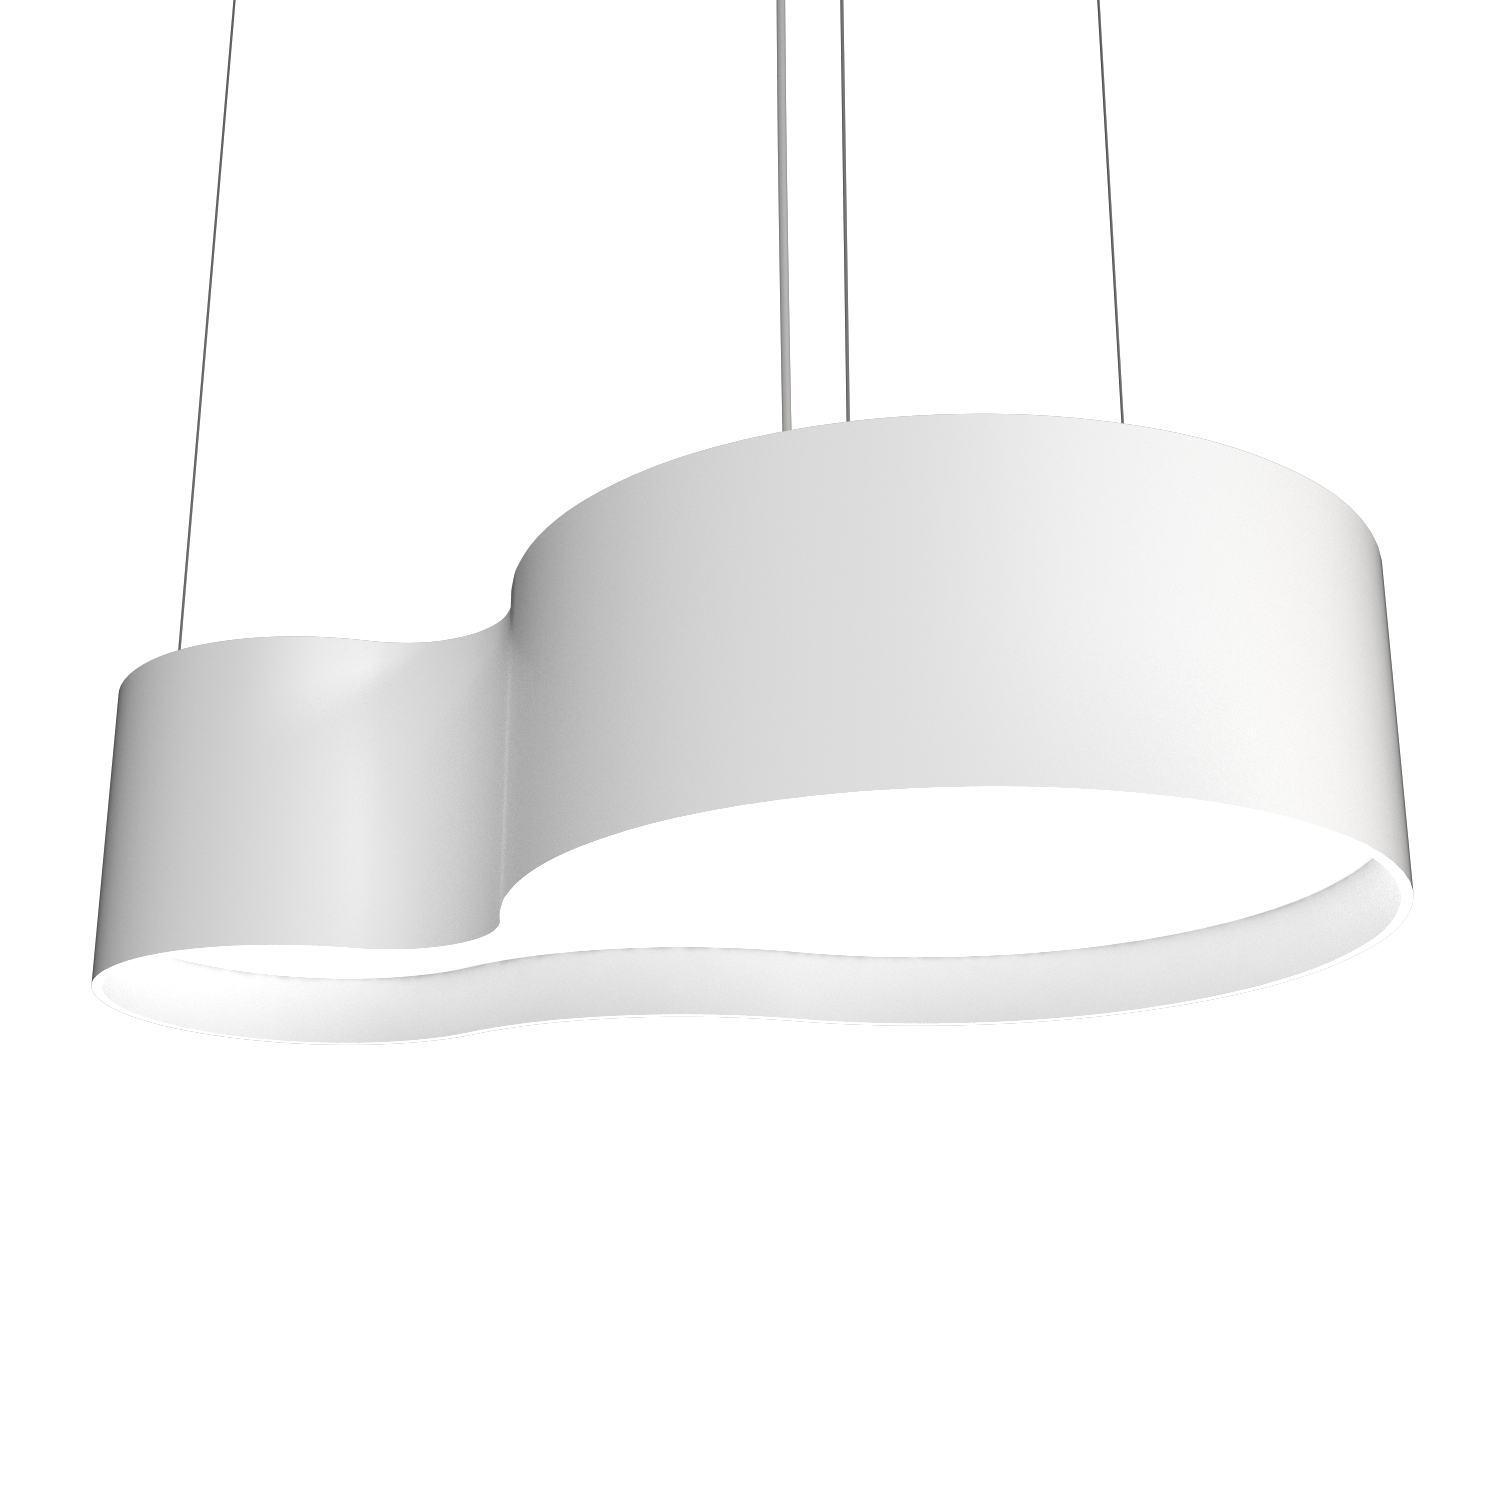 Pendant Lamp Accord Orgânico 285 - Orgânica Line Accord Lighting | 07. White